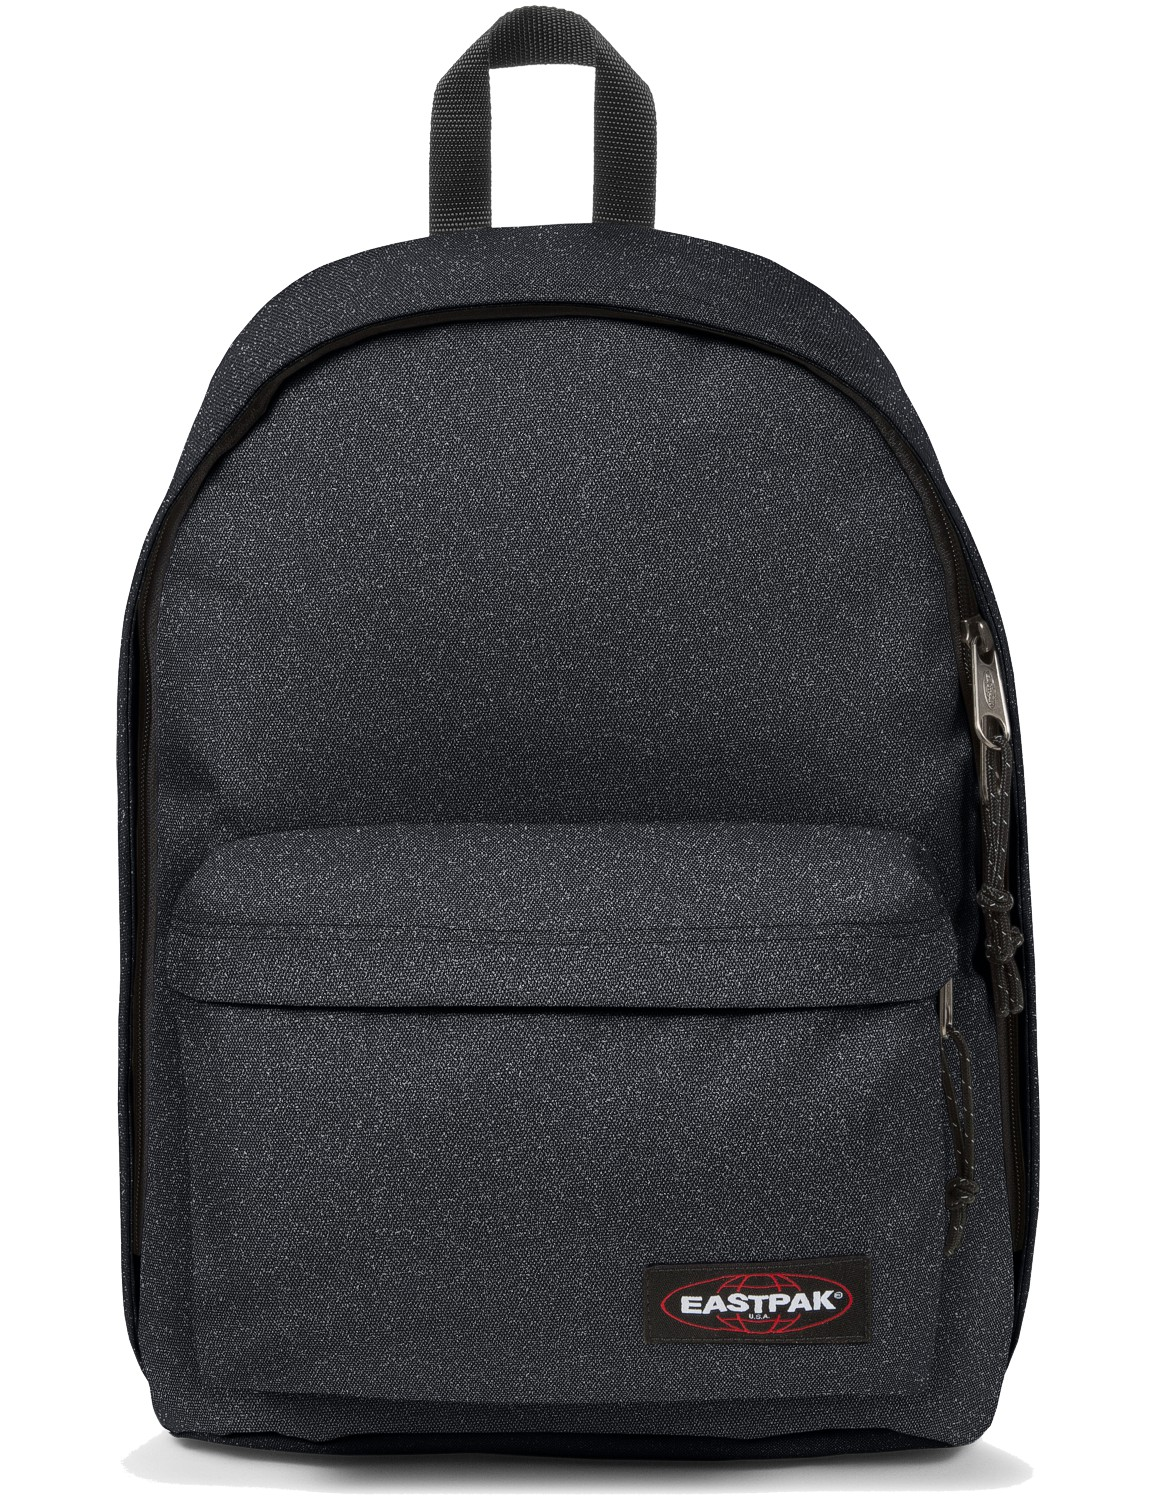 Eastpak Rucksack »Out of Office« mit Laptopfach Spark Cloud Funkelnd Glitzer